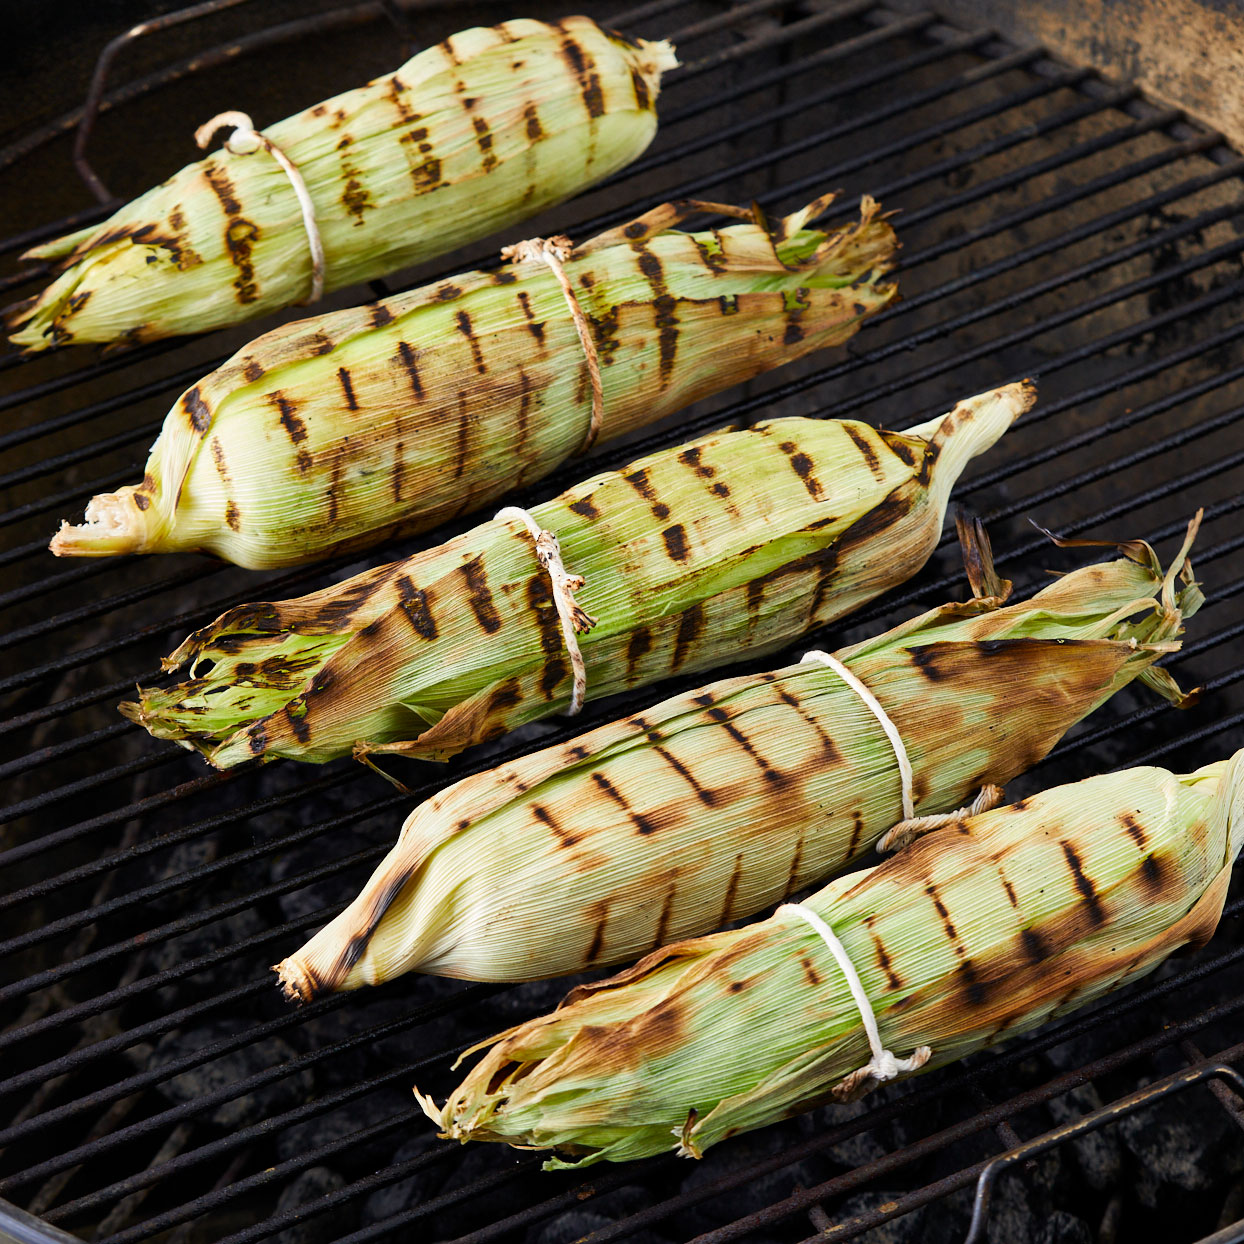 Grilled-corn-on-the-cob-in-husks